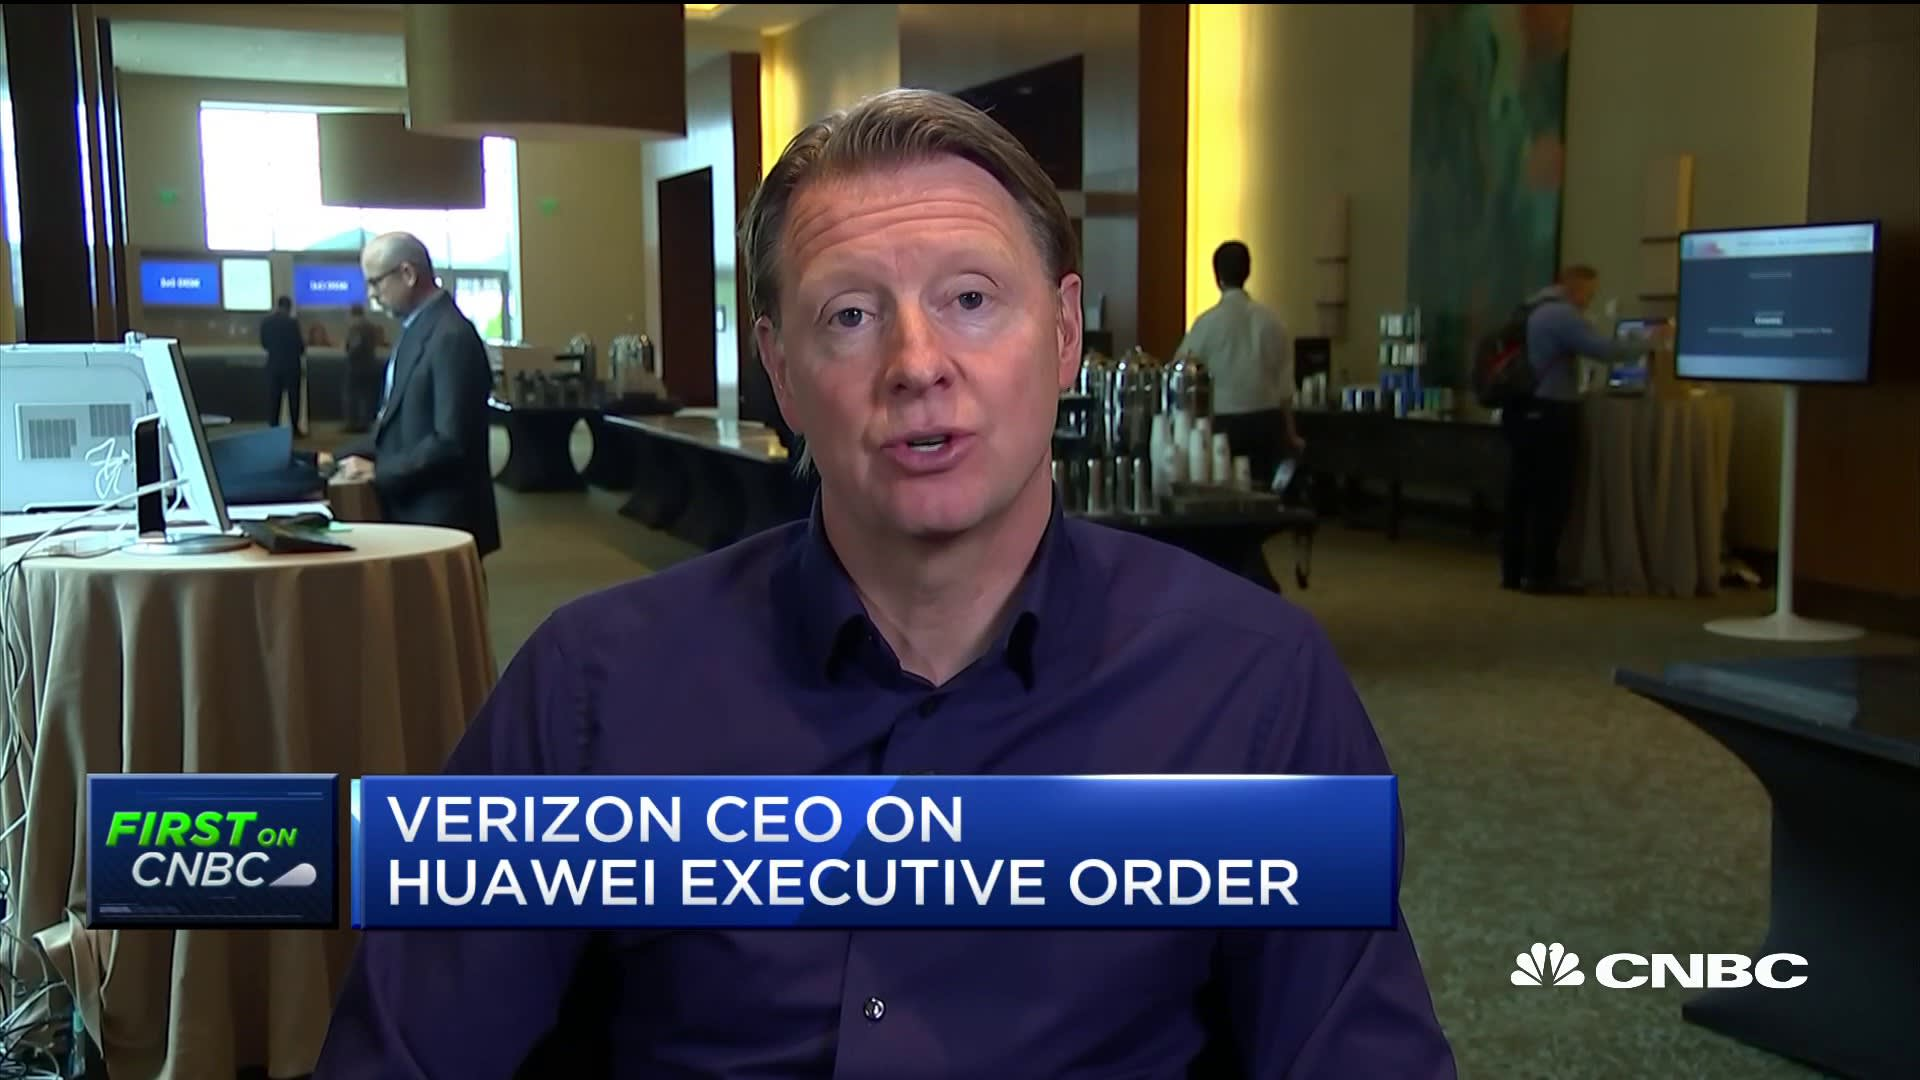 Advertisers have got lazy and must be more creative says Verizon's chief marketer